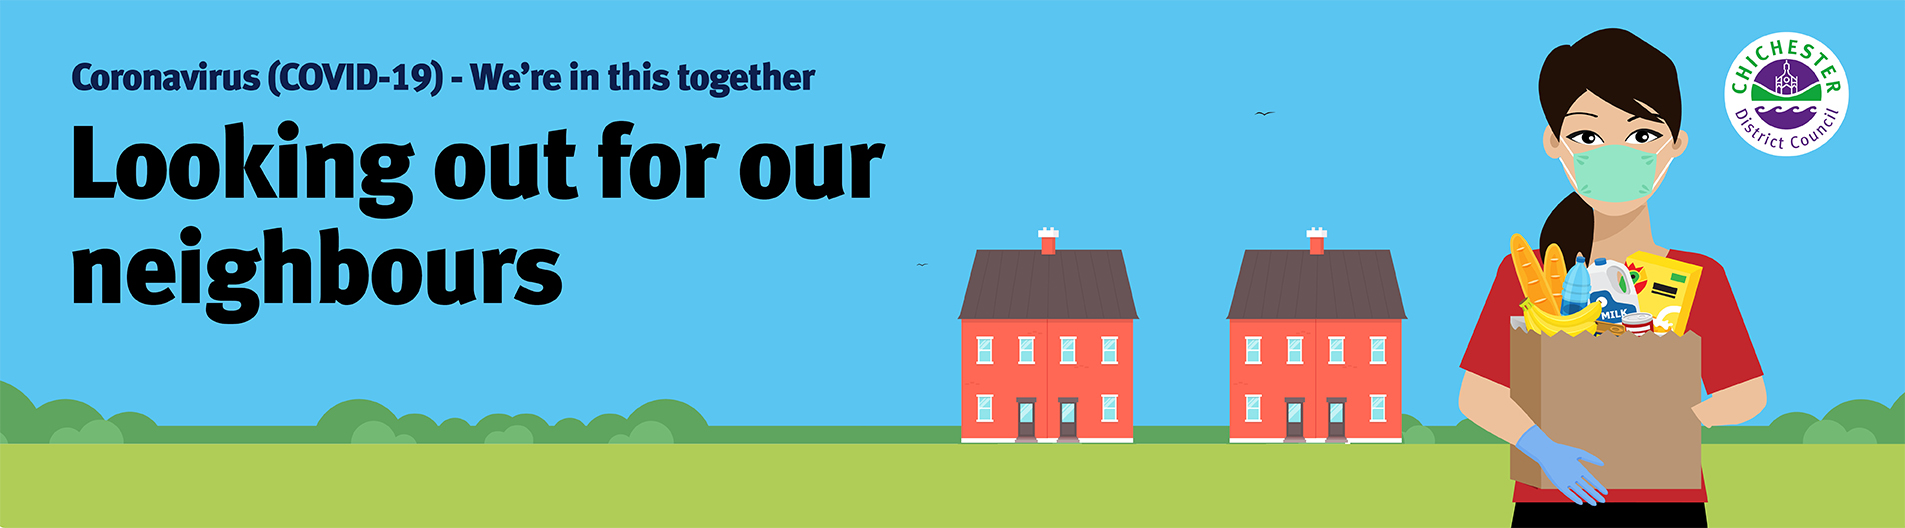 Help your neighbour campaign